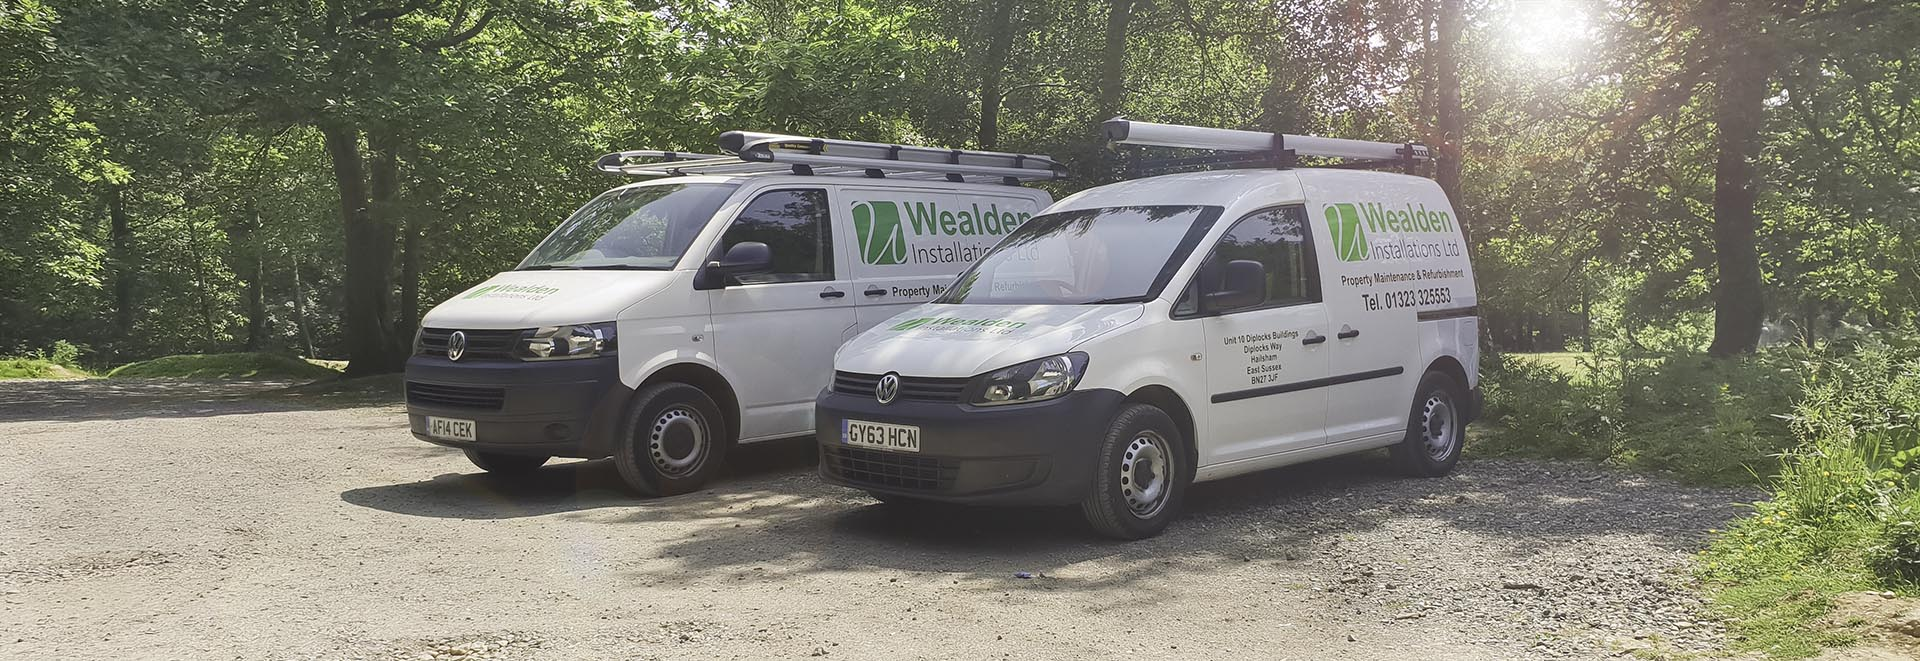 wealden installations vans banner